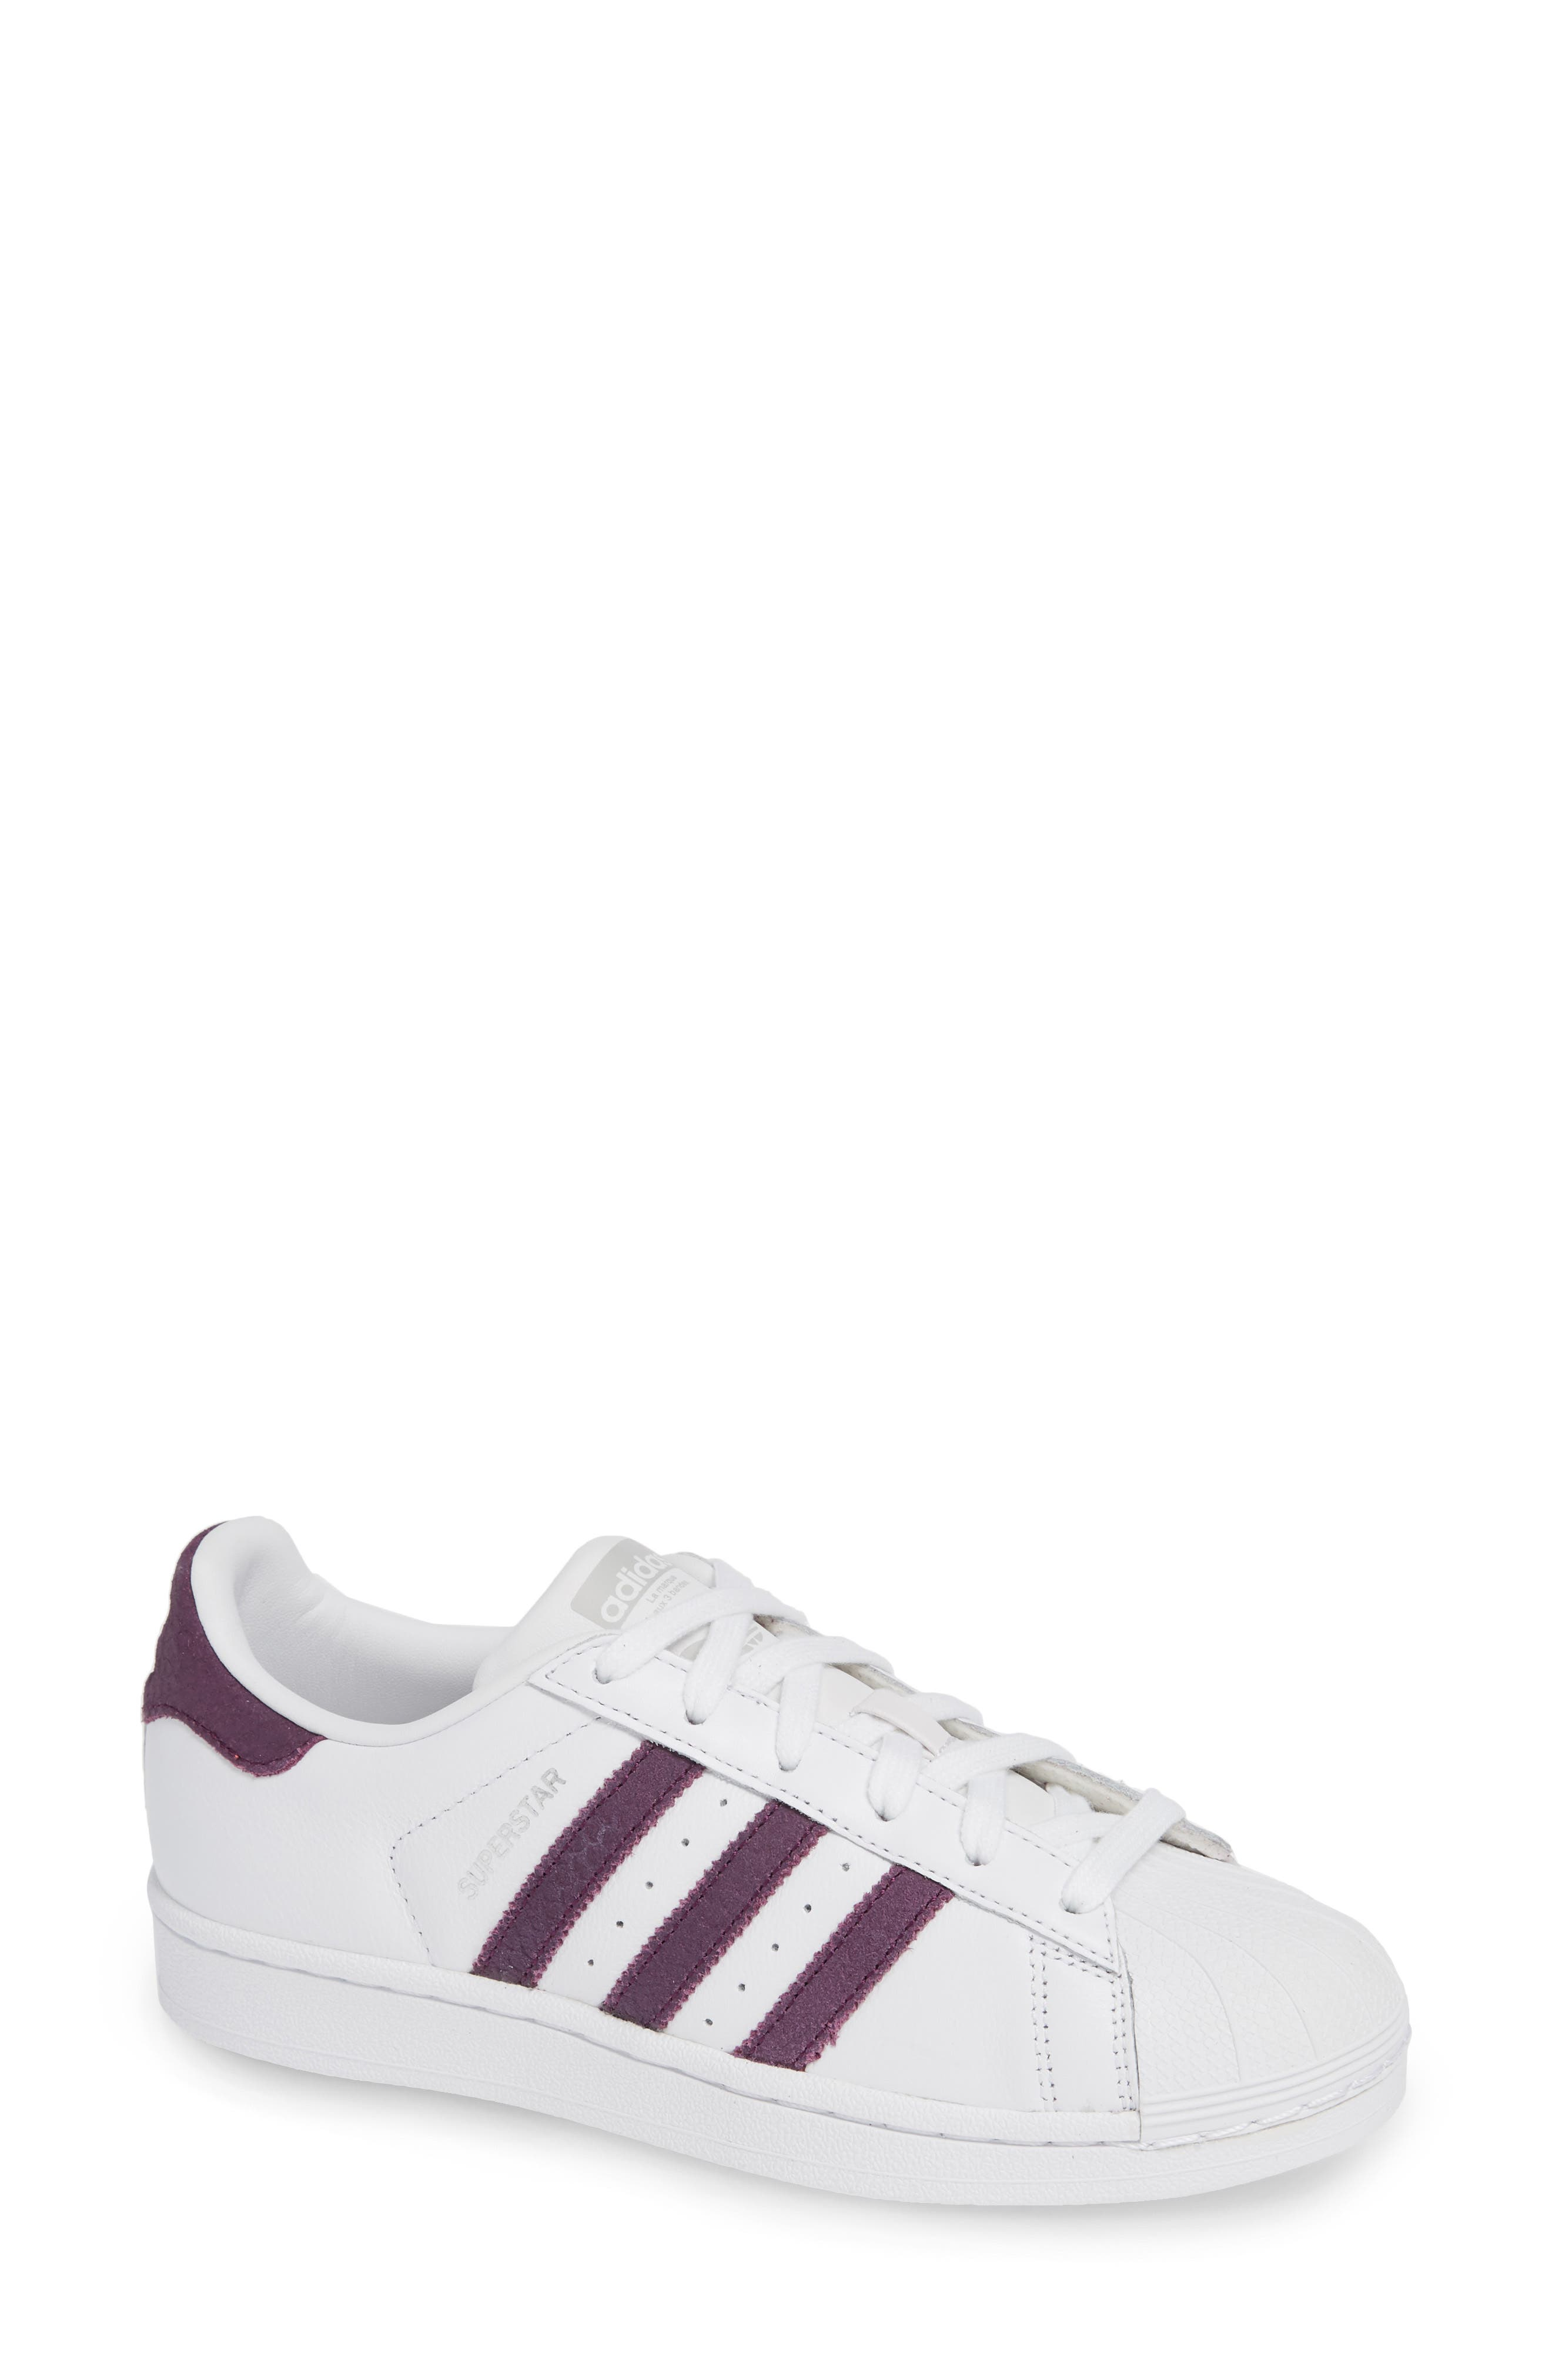 Superstar Sneaker,                         Main,                         color, WHITE/ RED NIGHT/ SILVER